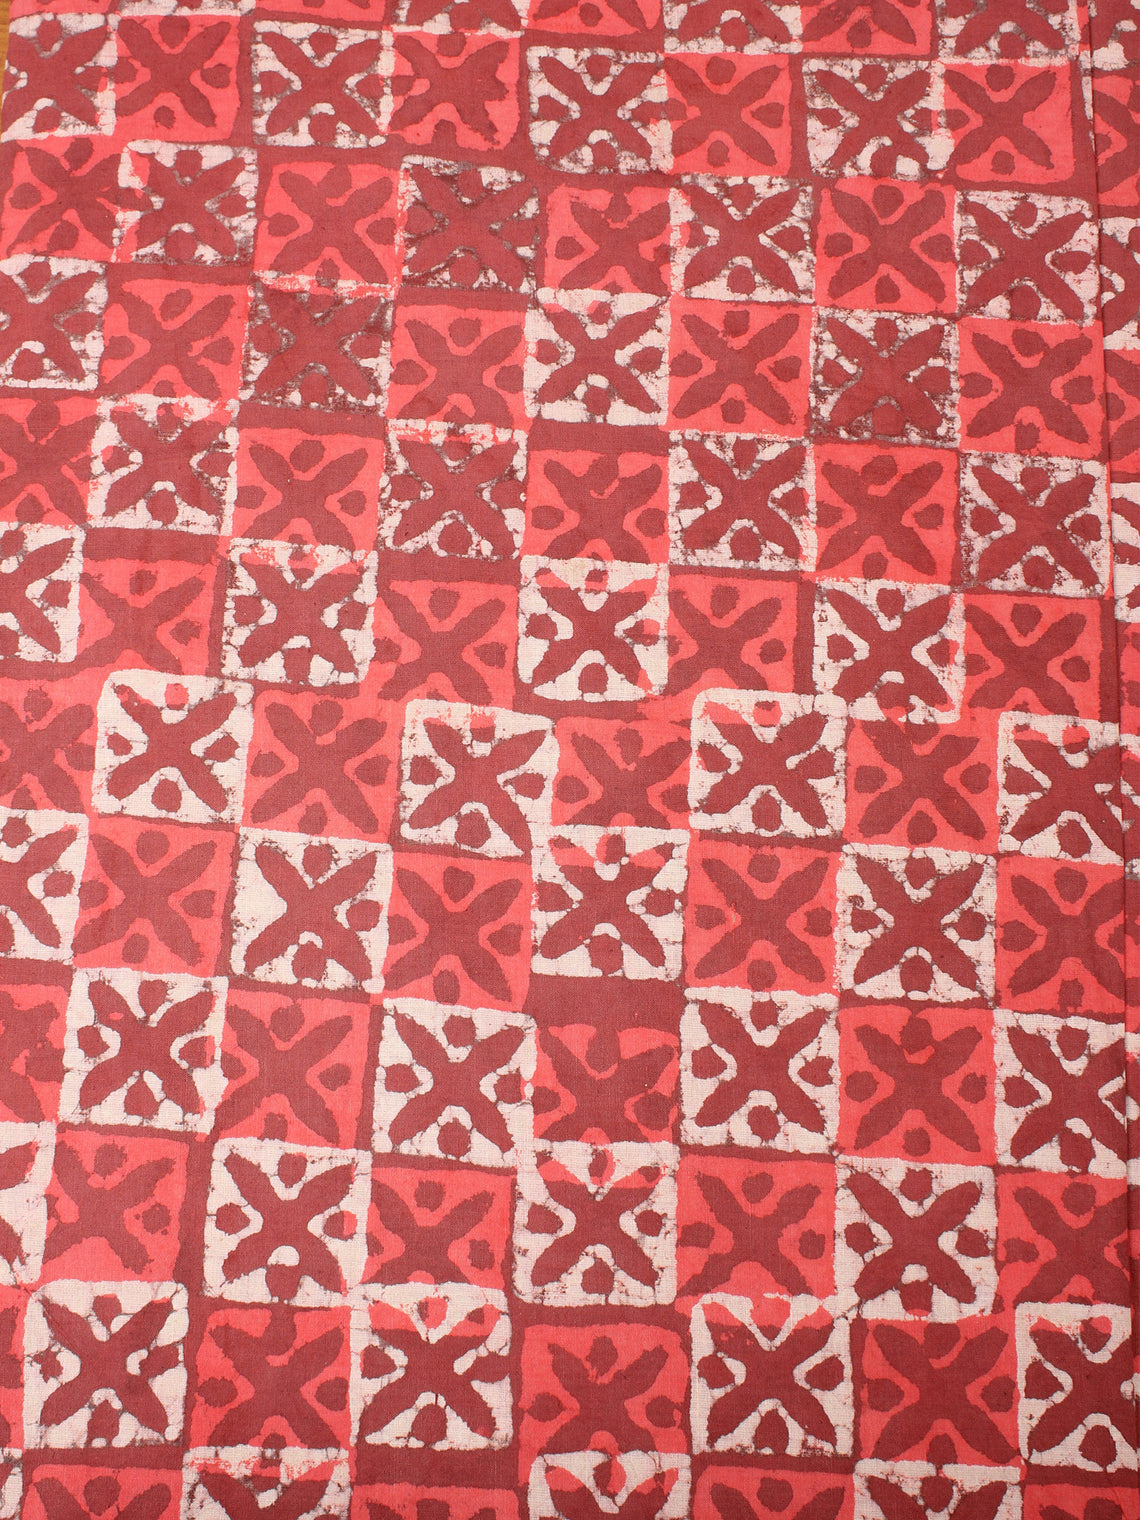 Red Beige Natural Dyed Hand Block Printed Cotton Fabric Per Meter - F0916229